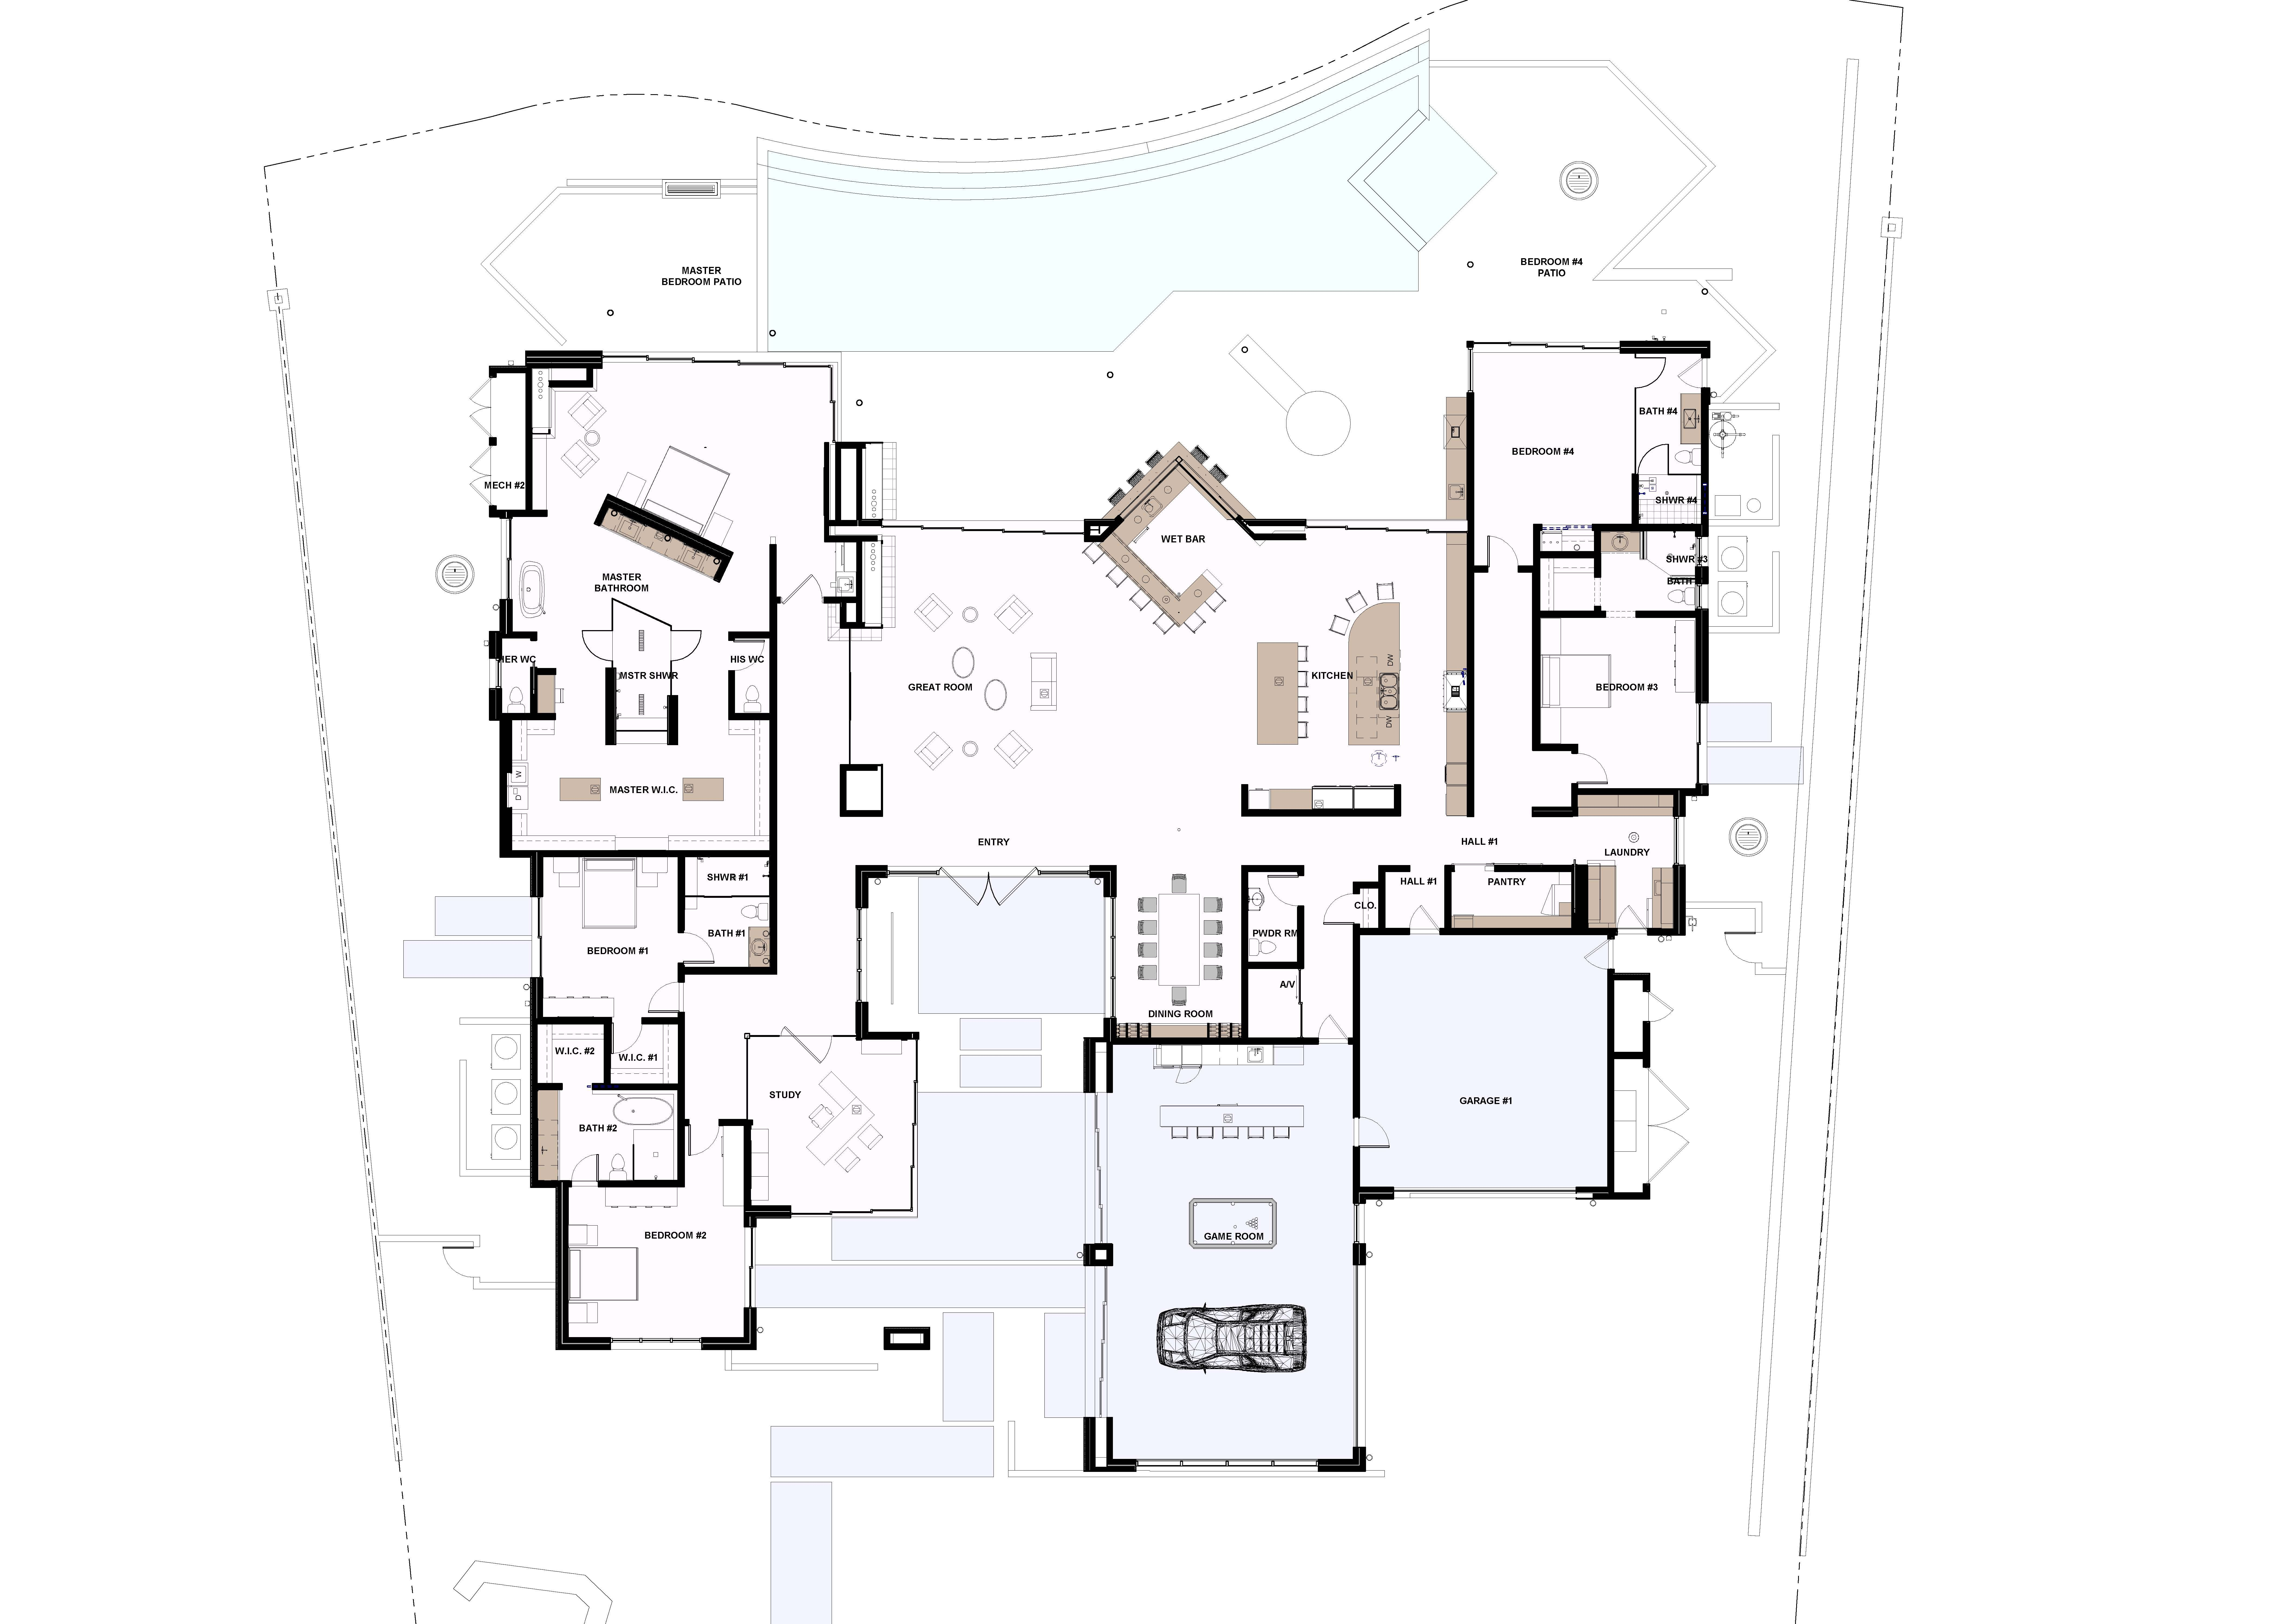 2019 The New American Home Floor Plan The New American Home House Floor Plans Floor Plans How To Plan